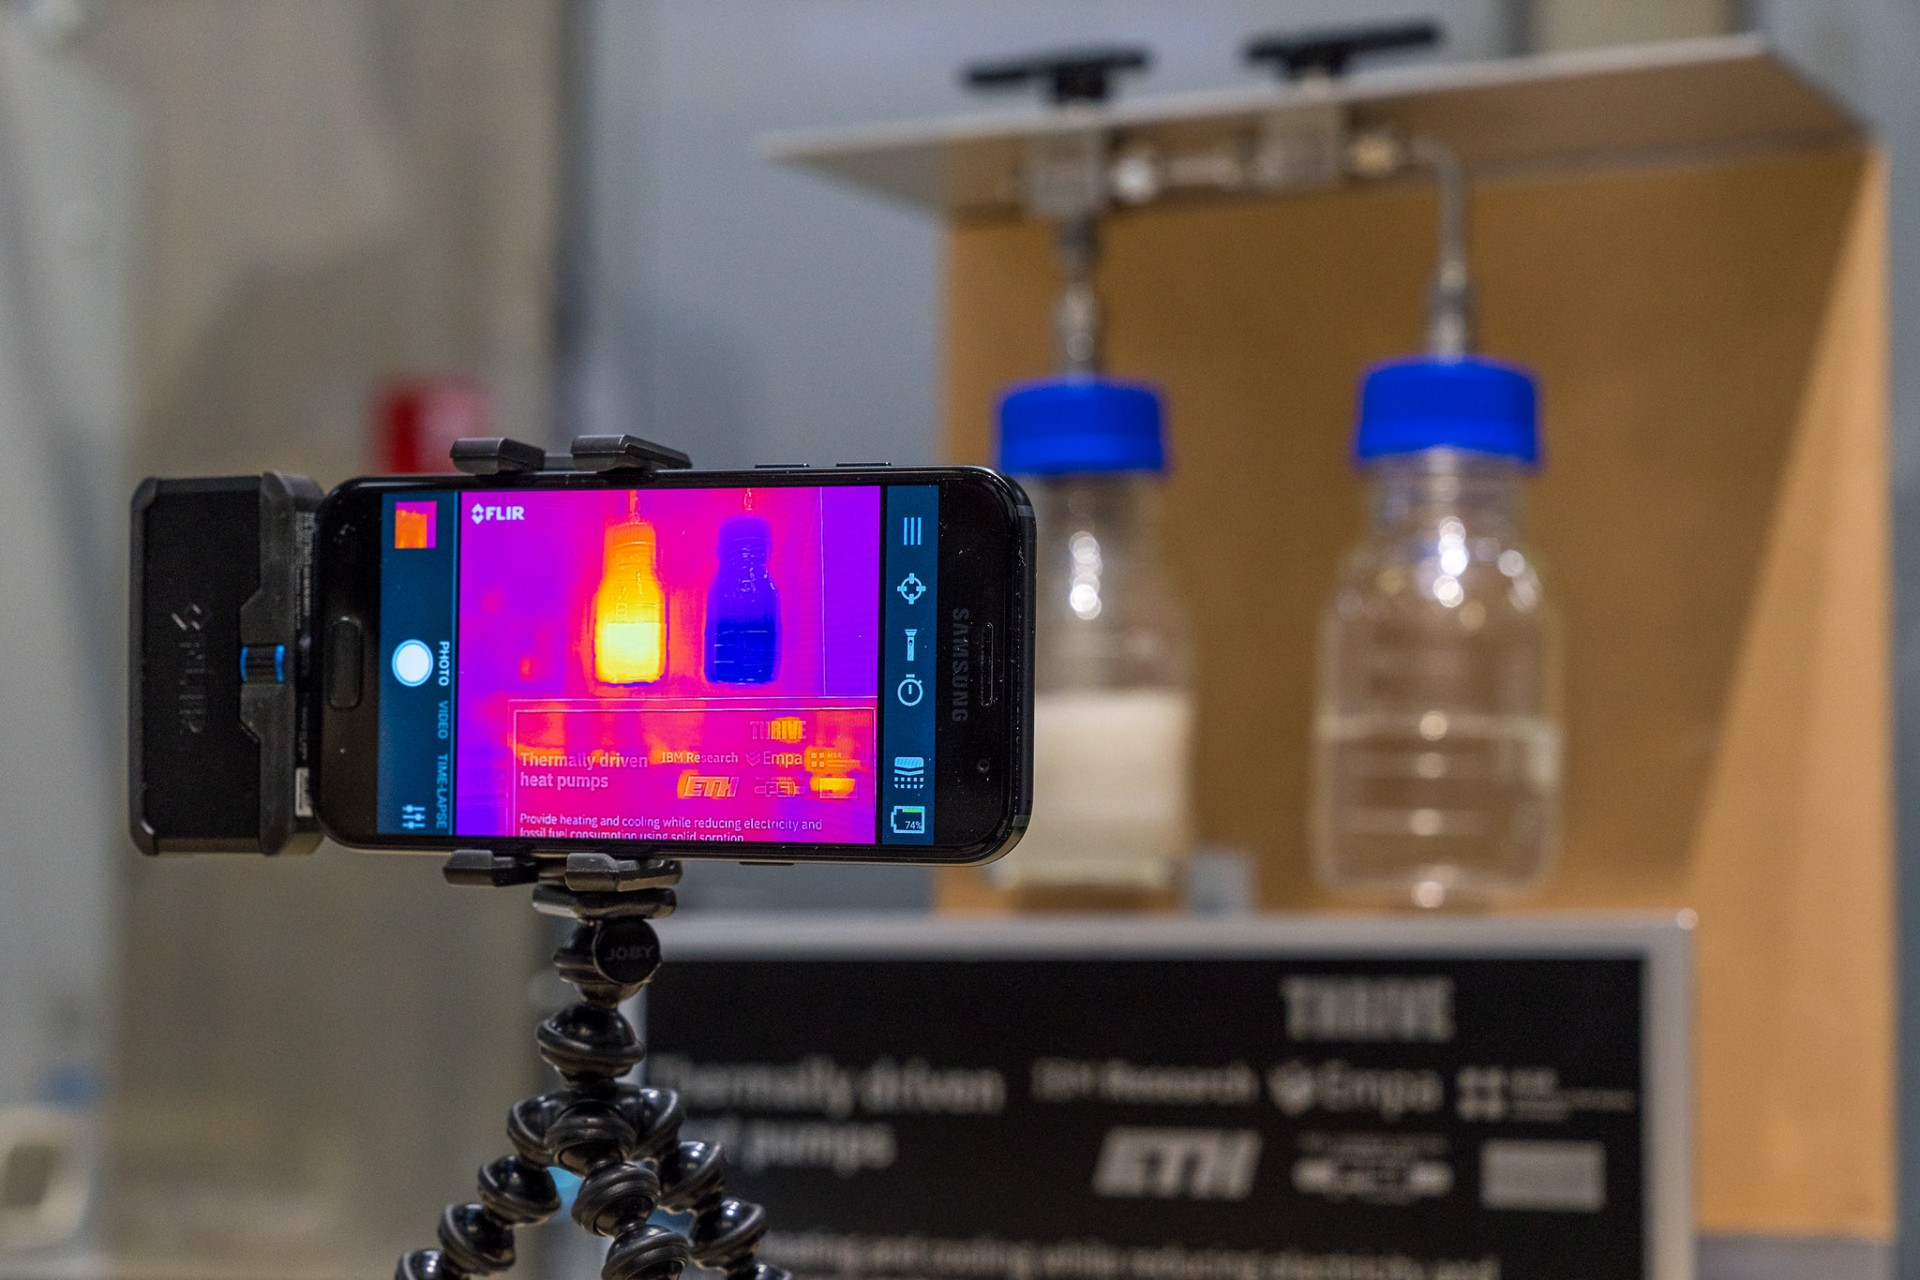 Visible heat: an infrared camera shows the temperature differences during an adsorption process.